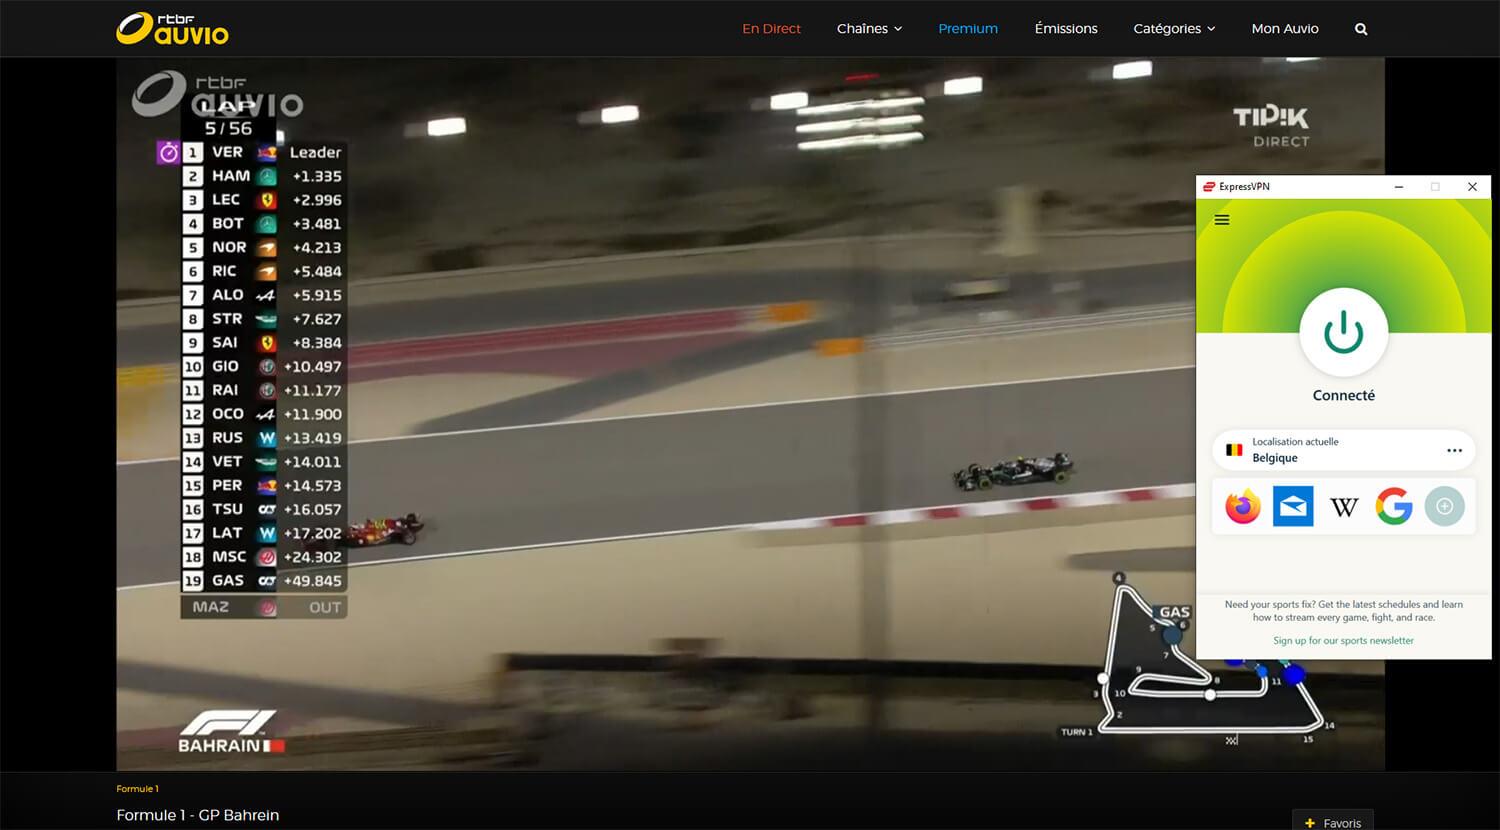 Streaming Direct Formule 1 RTBF Chaine gratuite